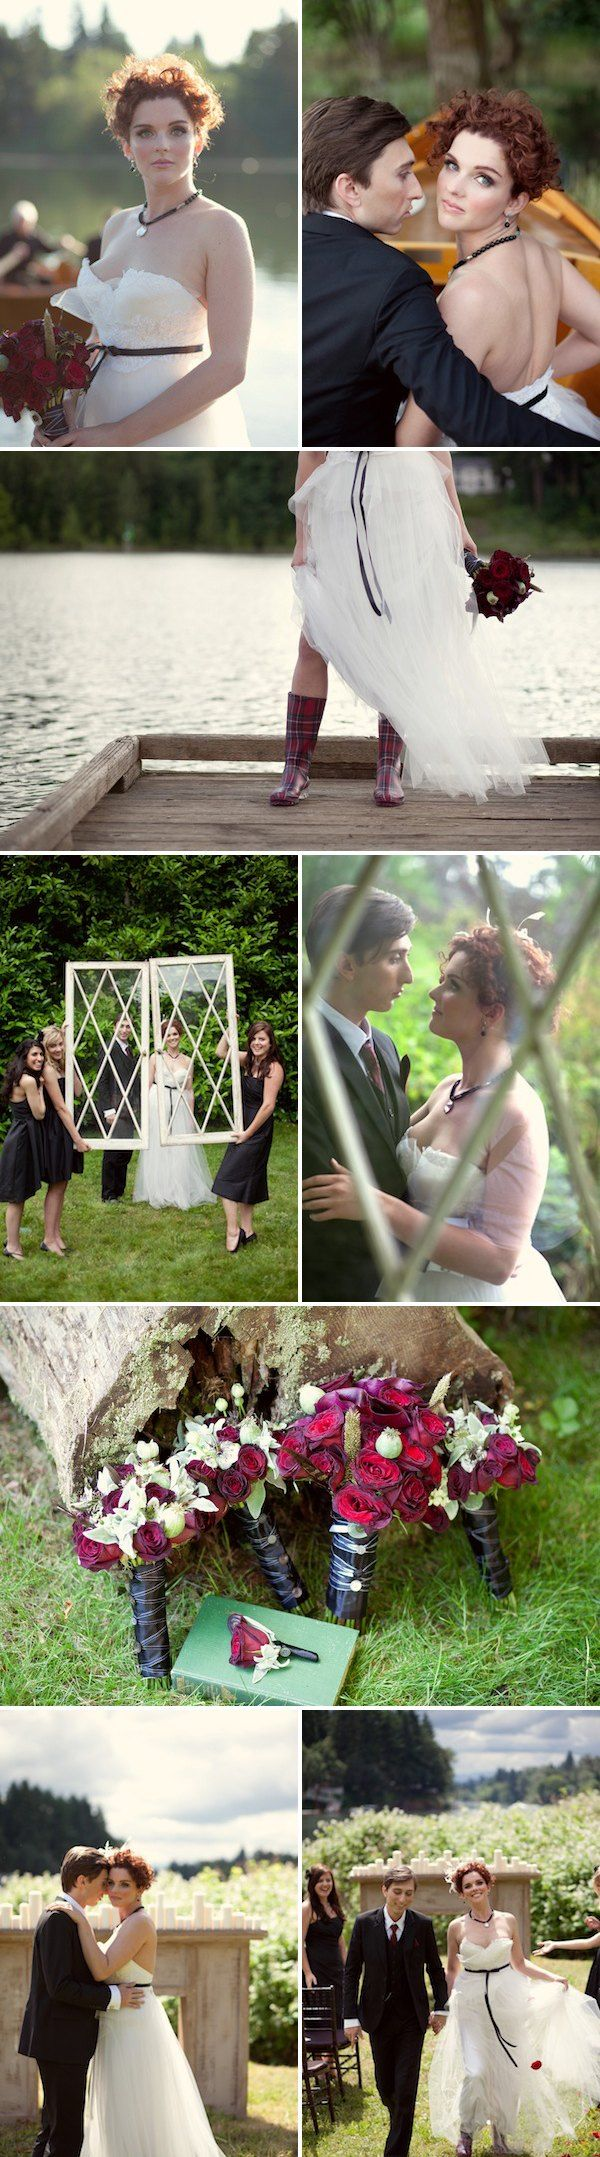 Love the plaid wellies!  Ideas!  BLACK VEIL LOVE   Twilight + Rustic Ralph Lauren Lake House + Elegant Gothic Chic = TO DIE FOR Wedding Inspiration. … Also Bambino. Also, I ...